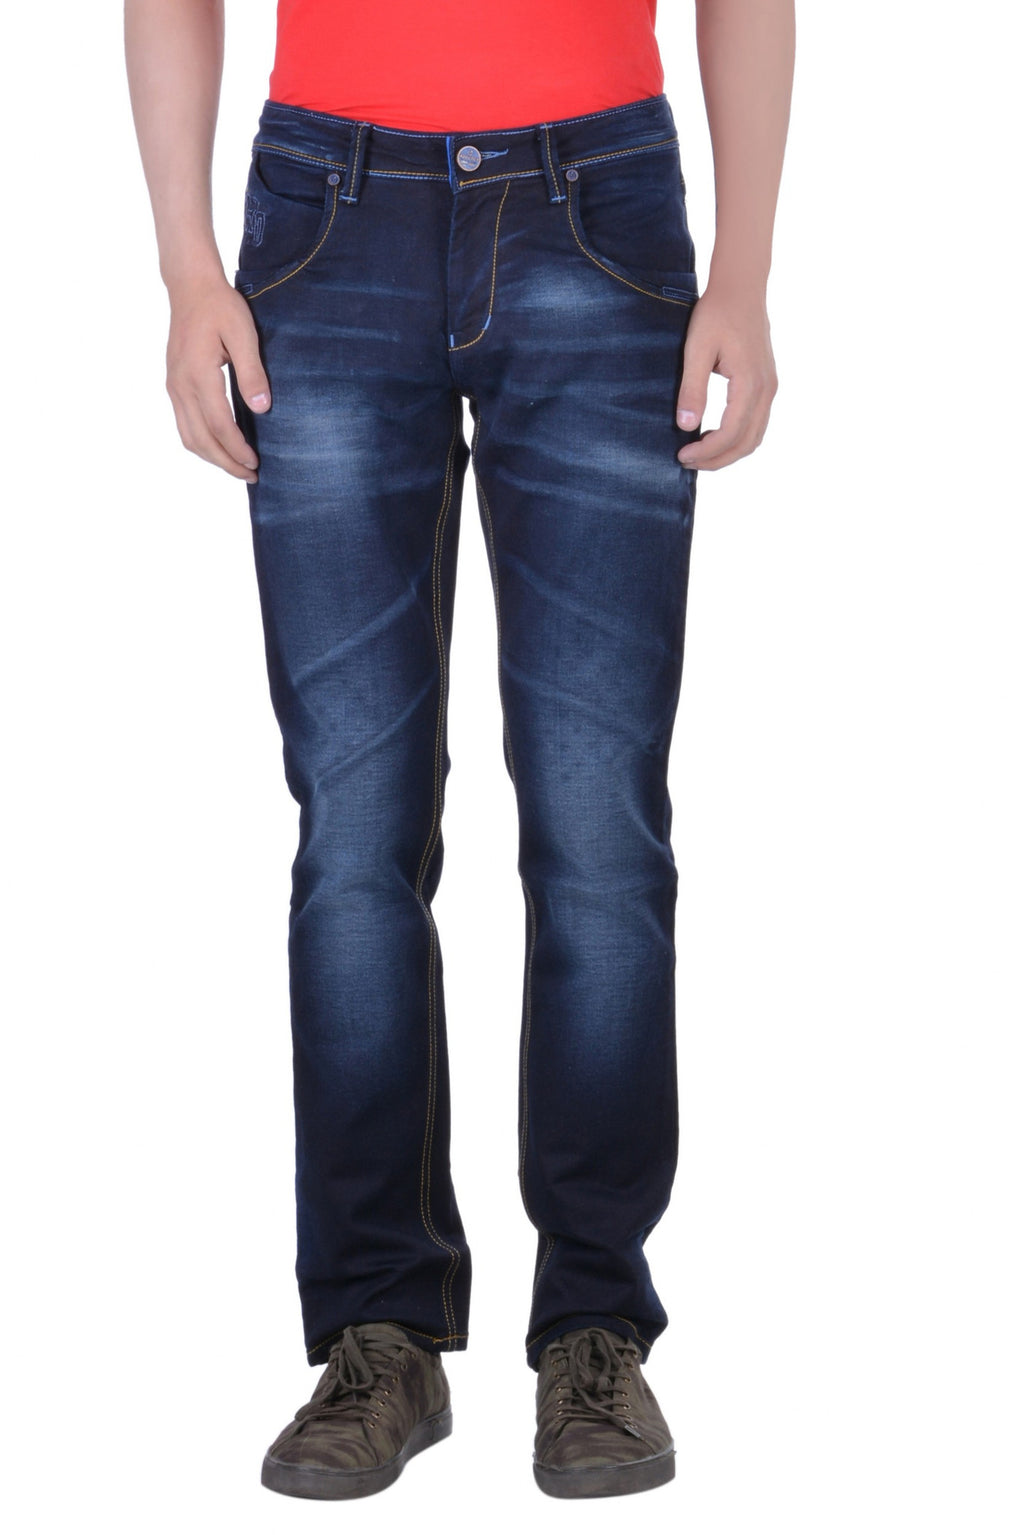 Hoffmen Slim Fit Men's Jeans JH546